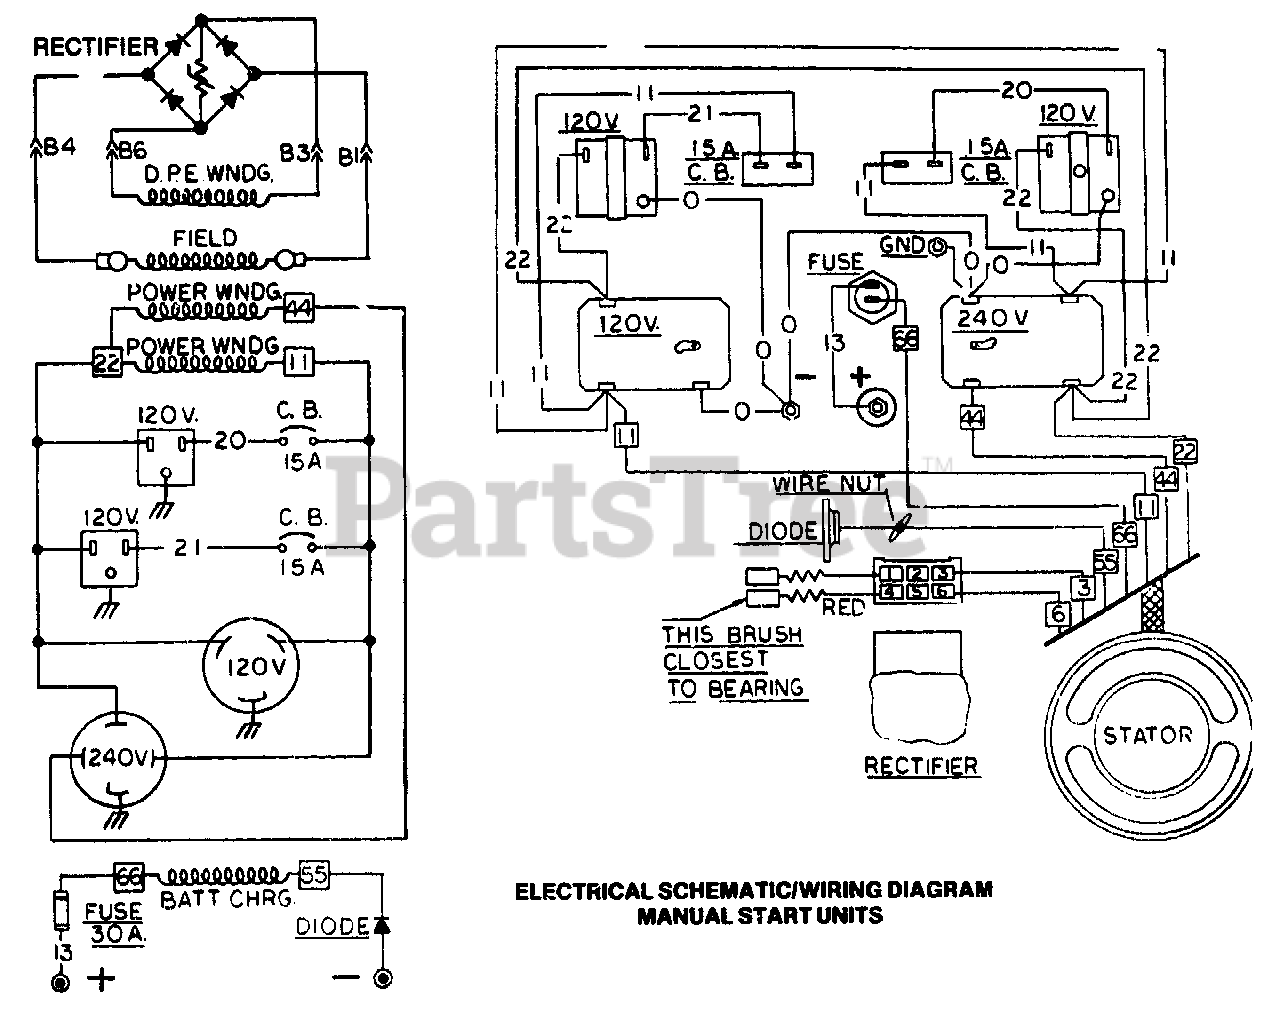 Generac G4050 (8751-2) - Generac 4,000 Watt Portable Generator Electrical  Schematic And Wiring Diagram Manual Start Units Parts Lookup with Diagrams  | PartsTreePartsTree